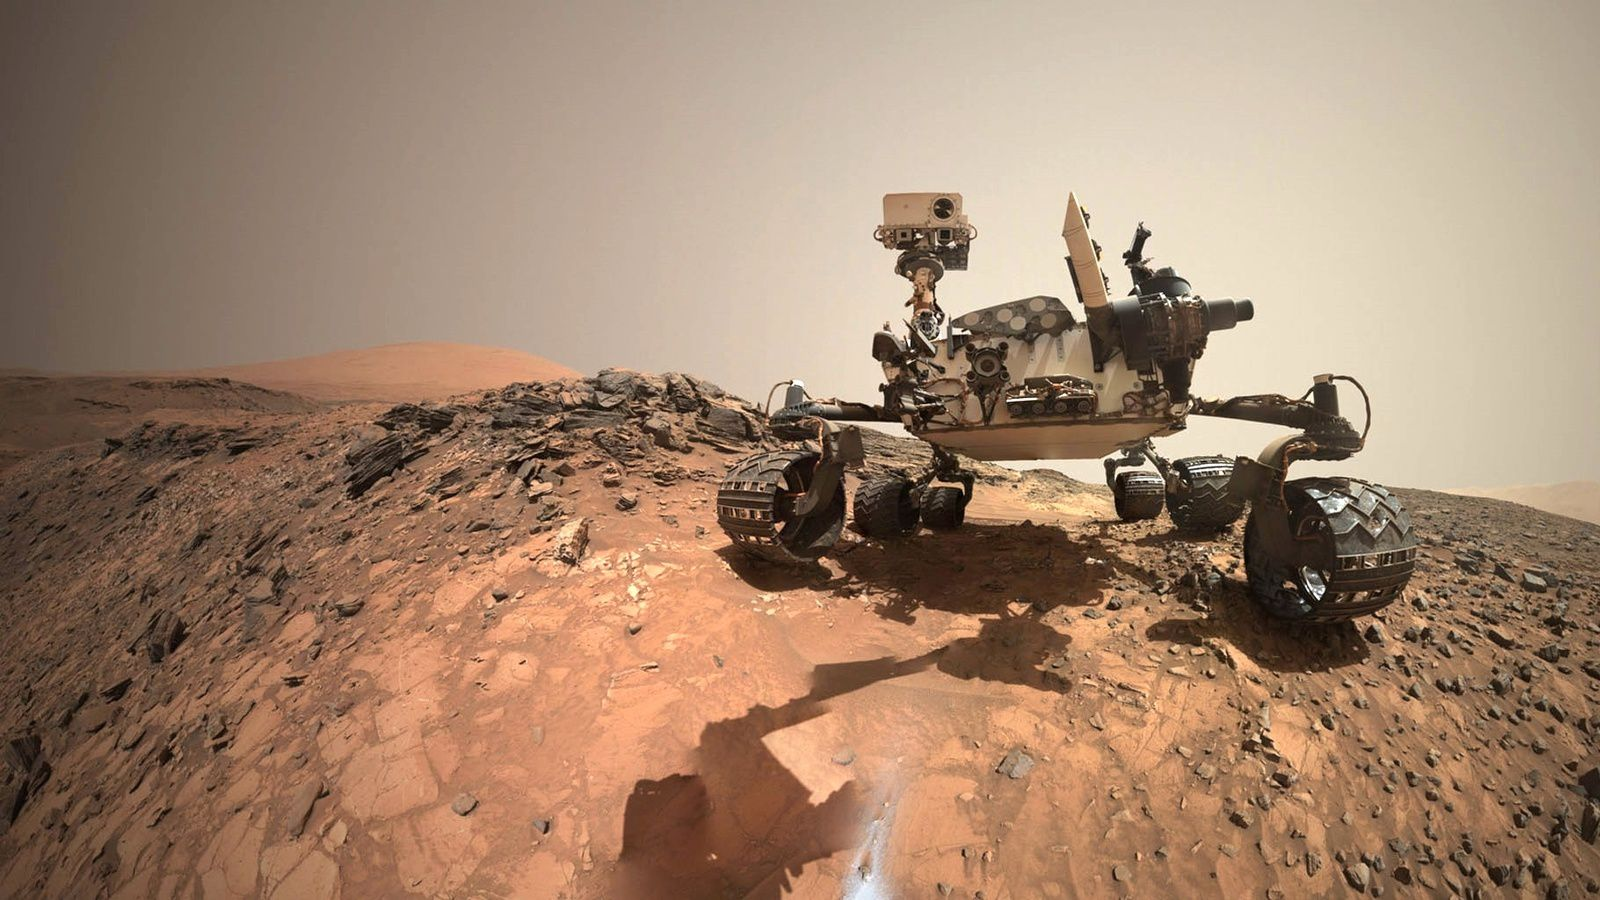 The Mars rover Curiosity on the drilling site on July 30, 2015. Credit: NASA / JPL-Caltech / MSSS